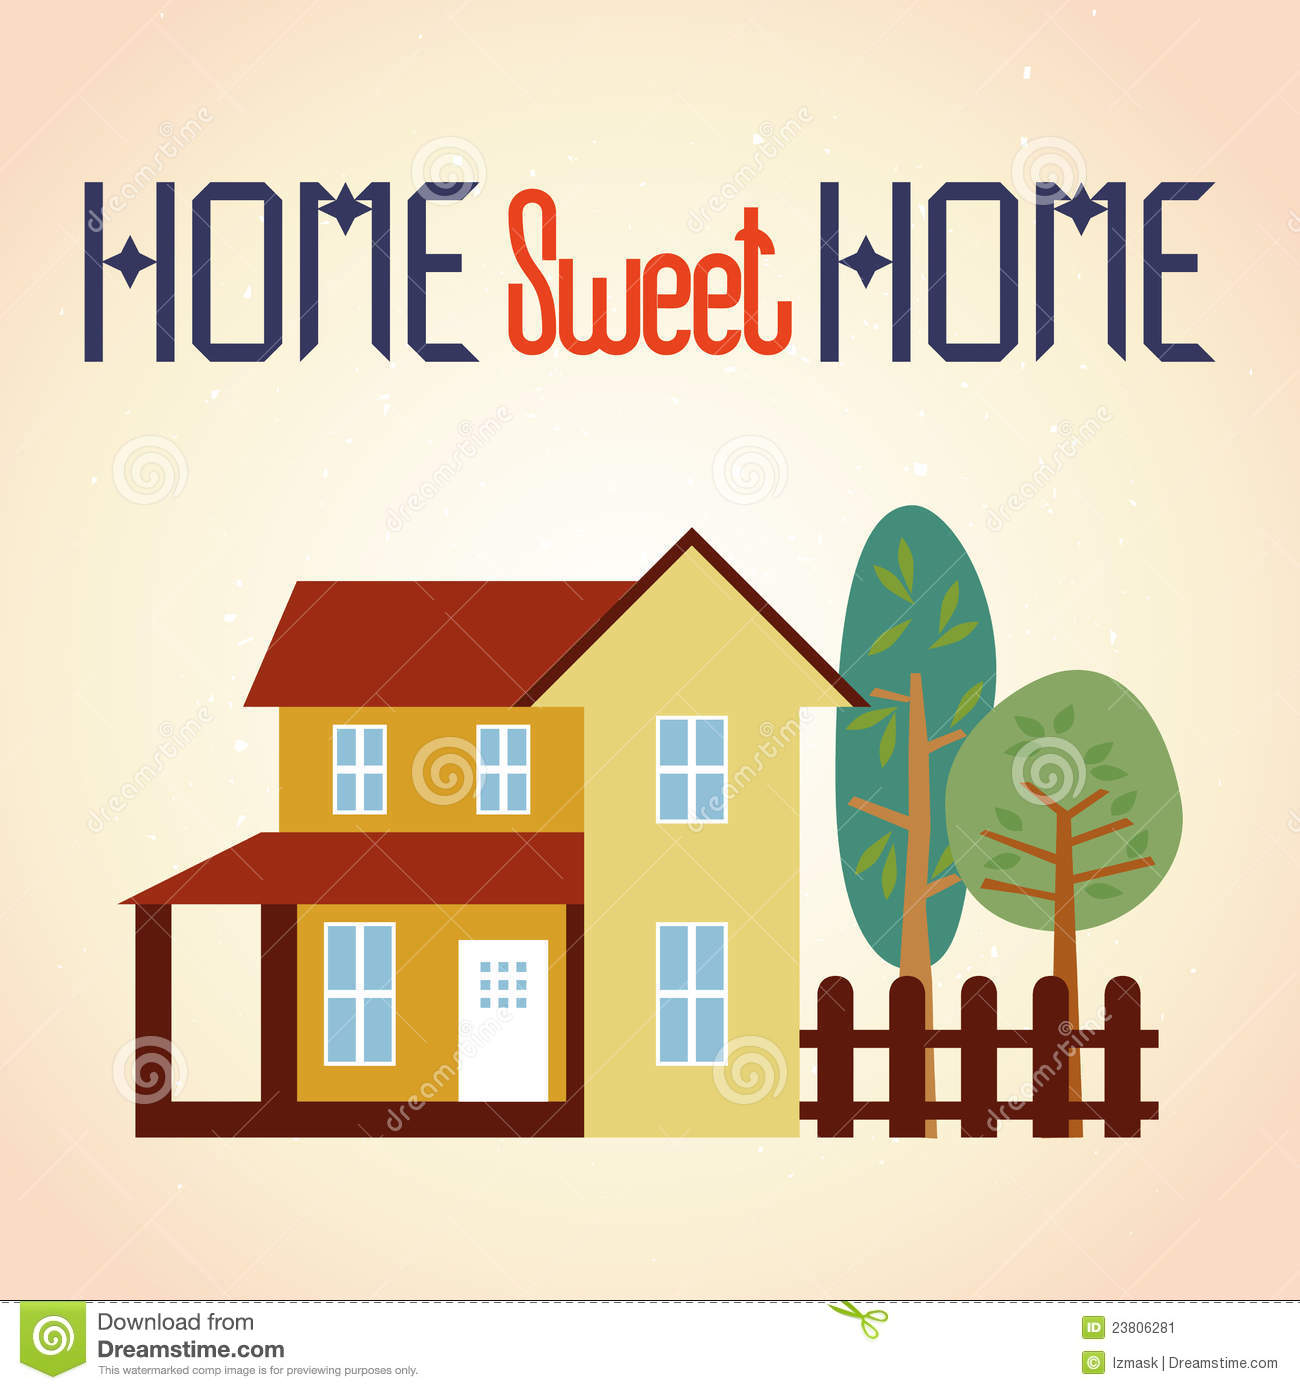 Clipart home sweet home graphic free stock Clipart home sweet home - ClipartFest graphic free stock